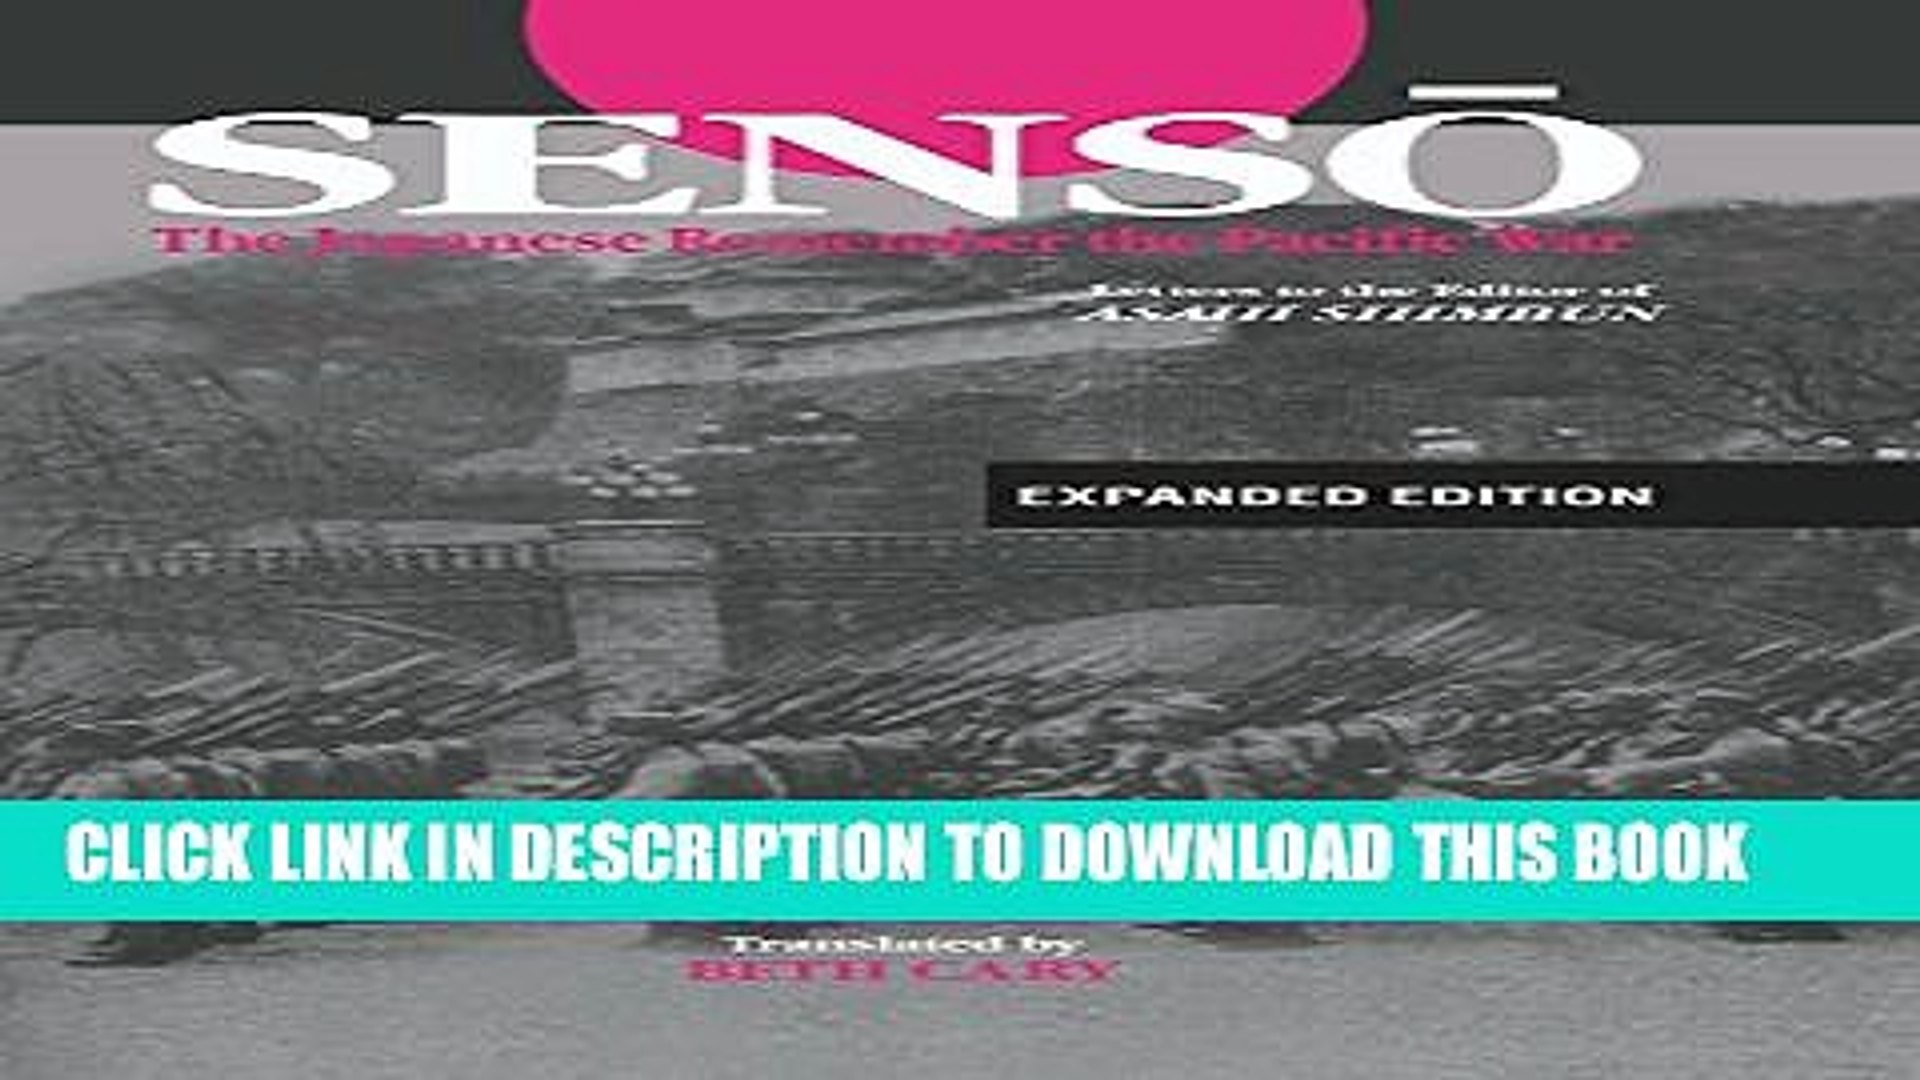 [PDF] Senso: The Japanese Remember the Pacific War: Letters to the Editor of